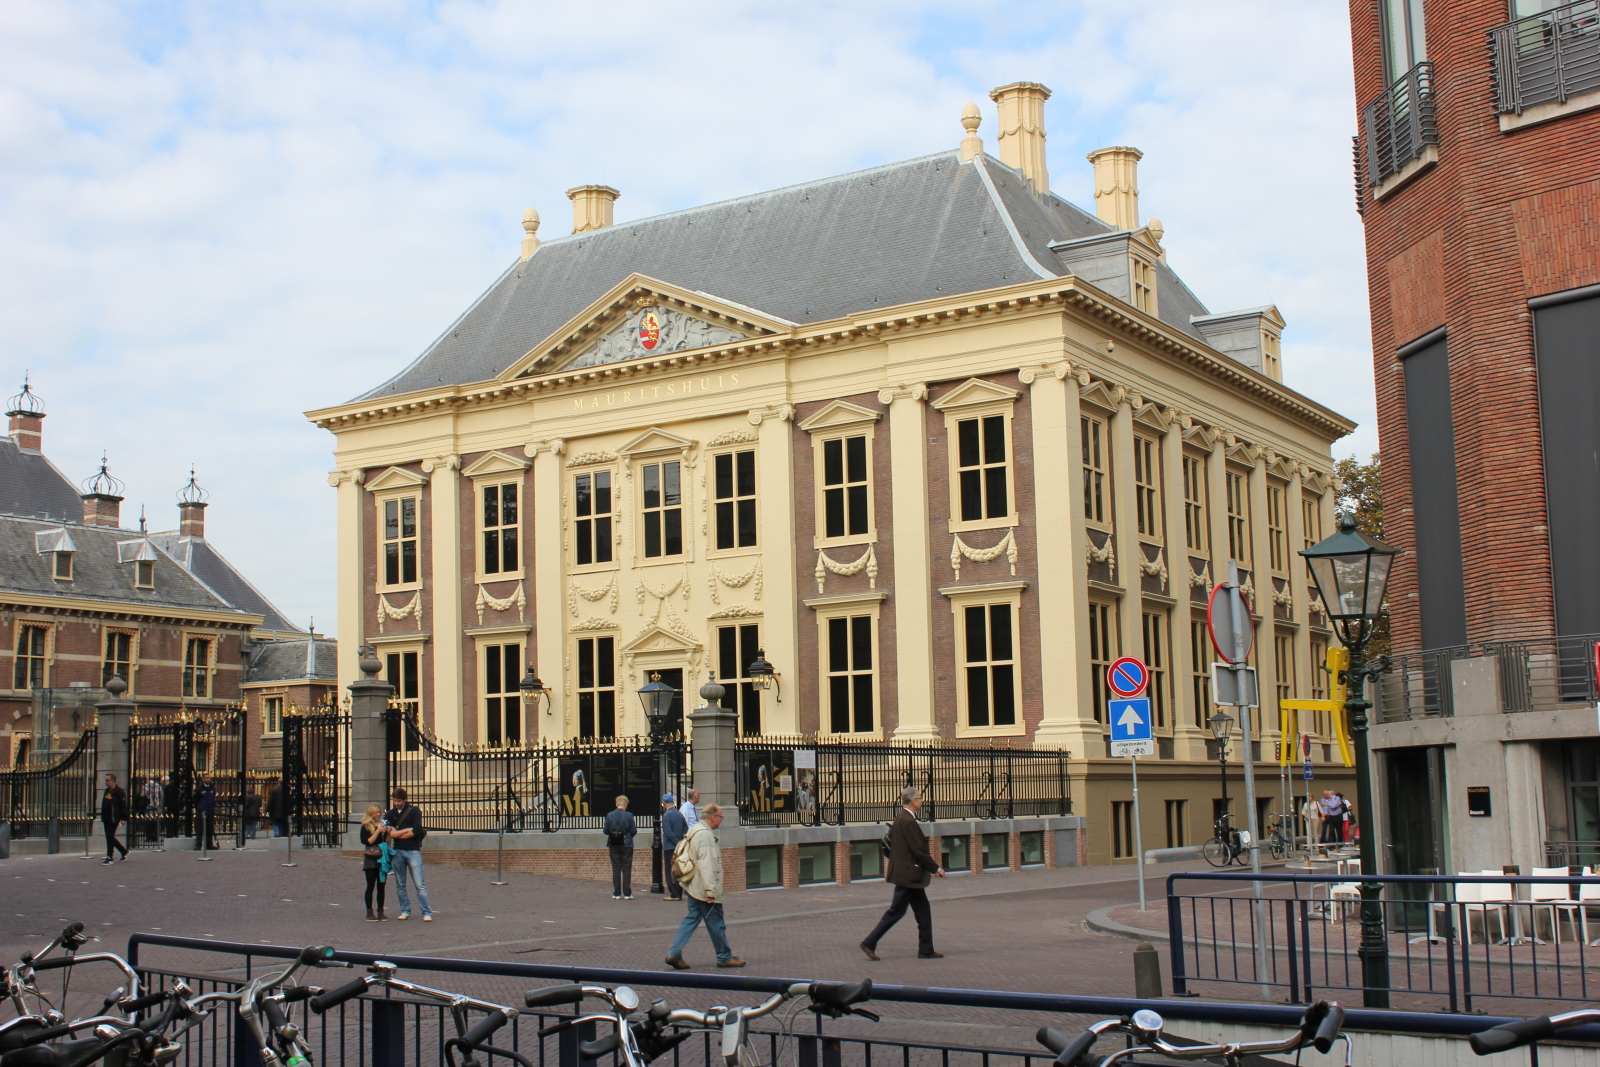 The newly renovated Mauritshuis